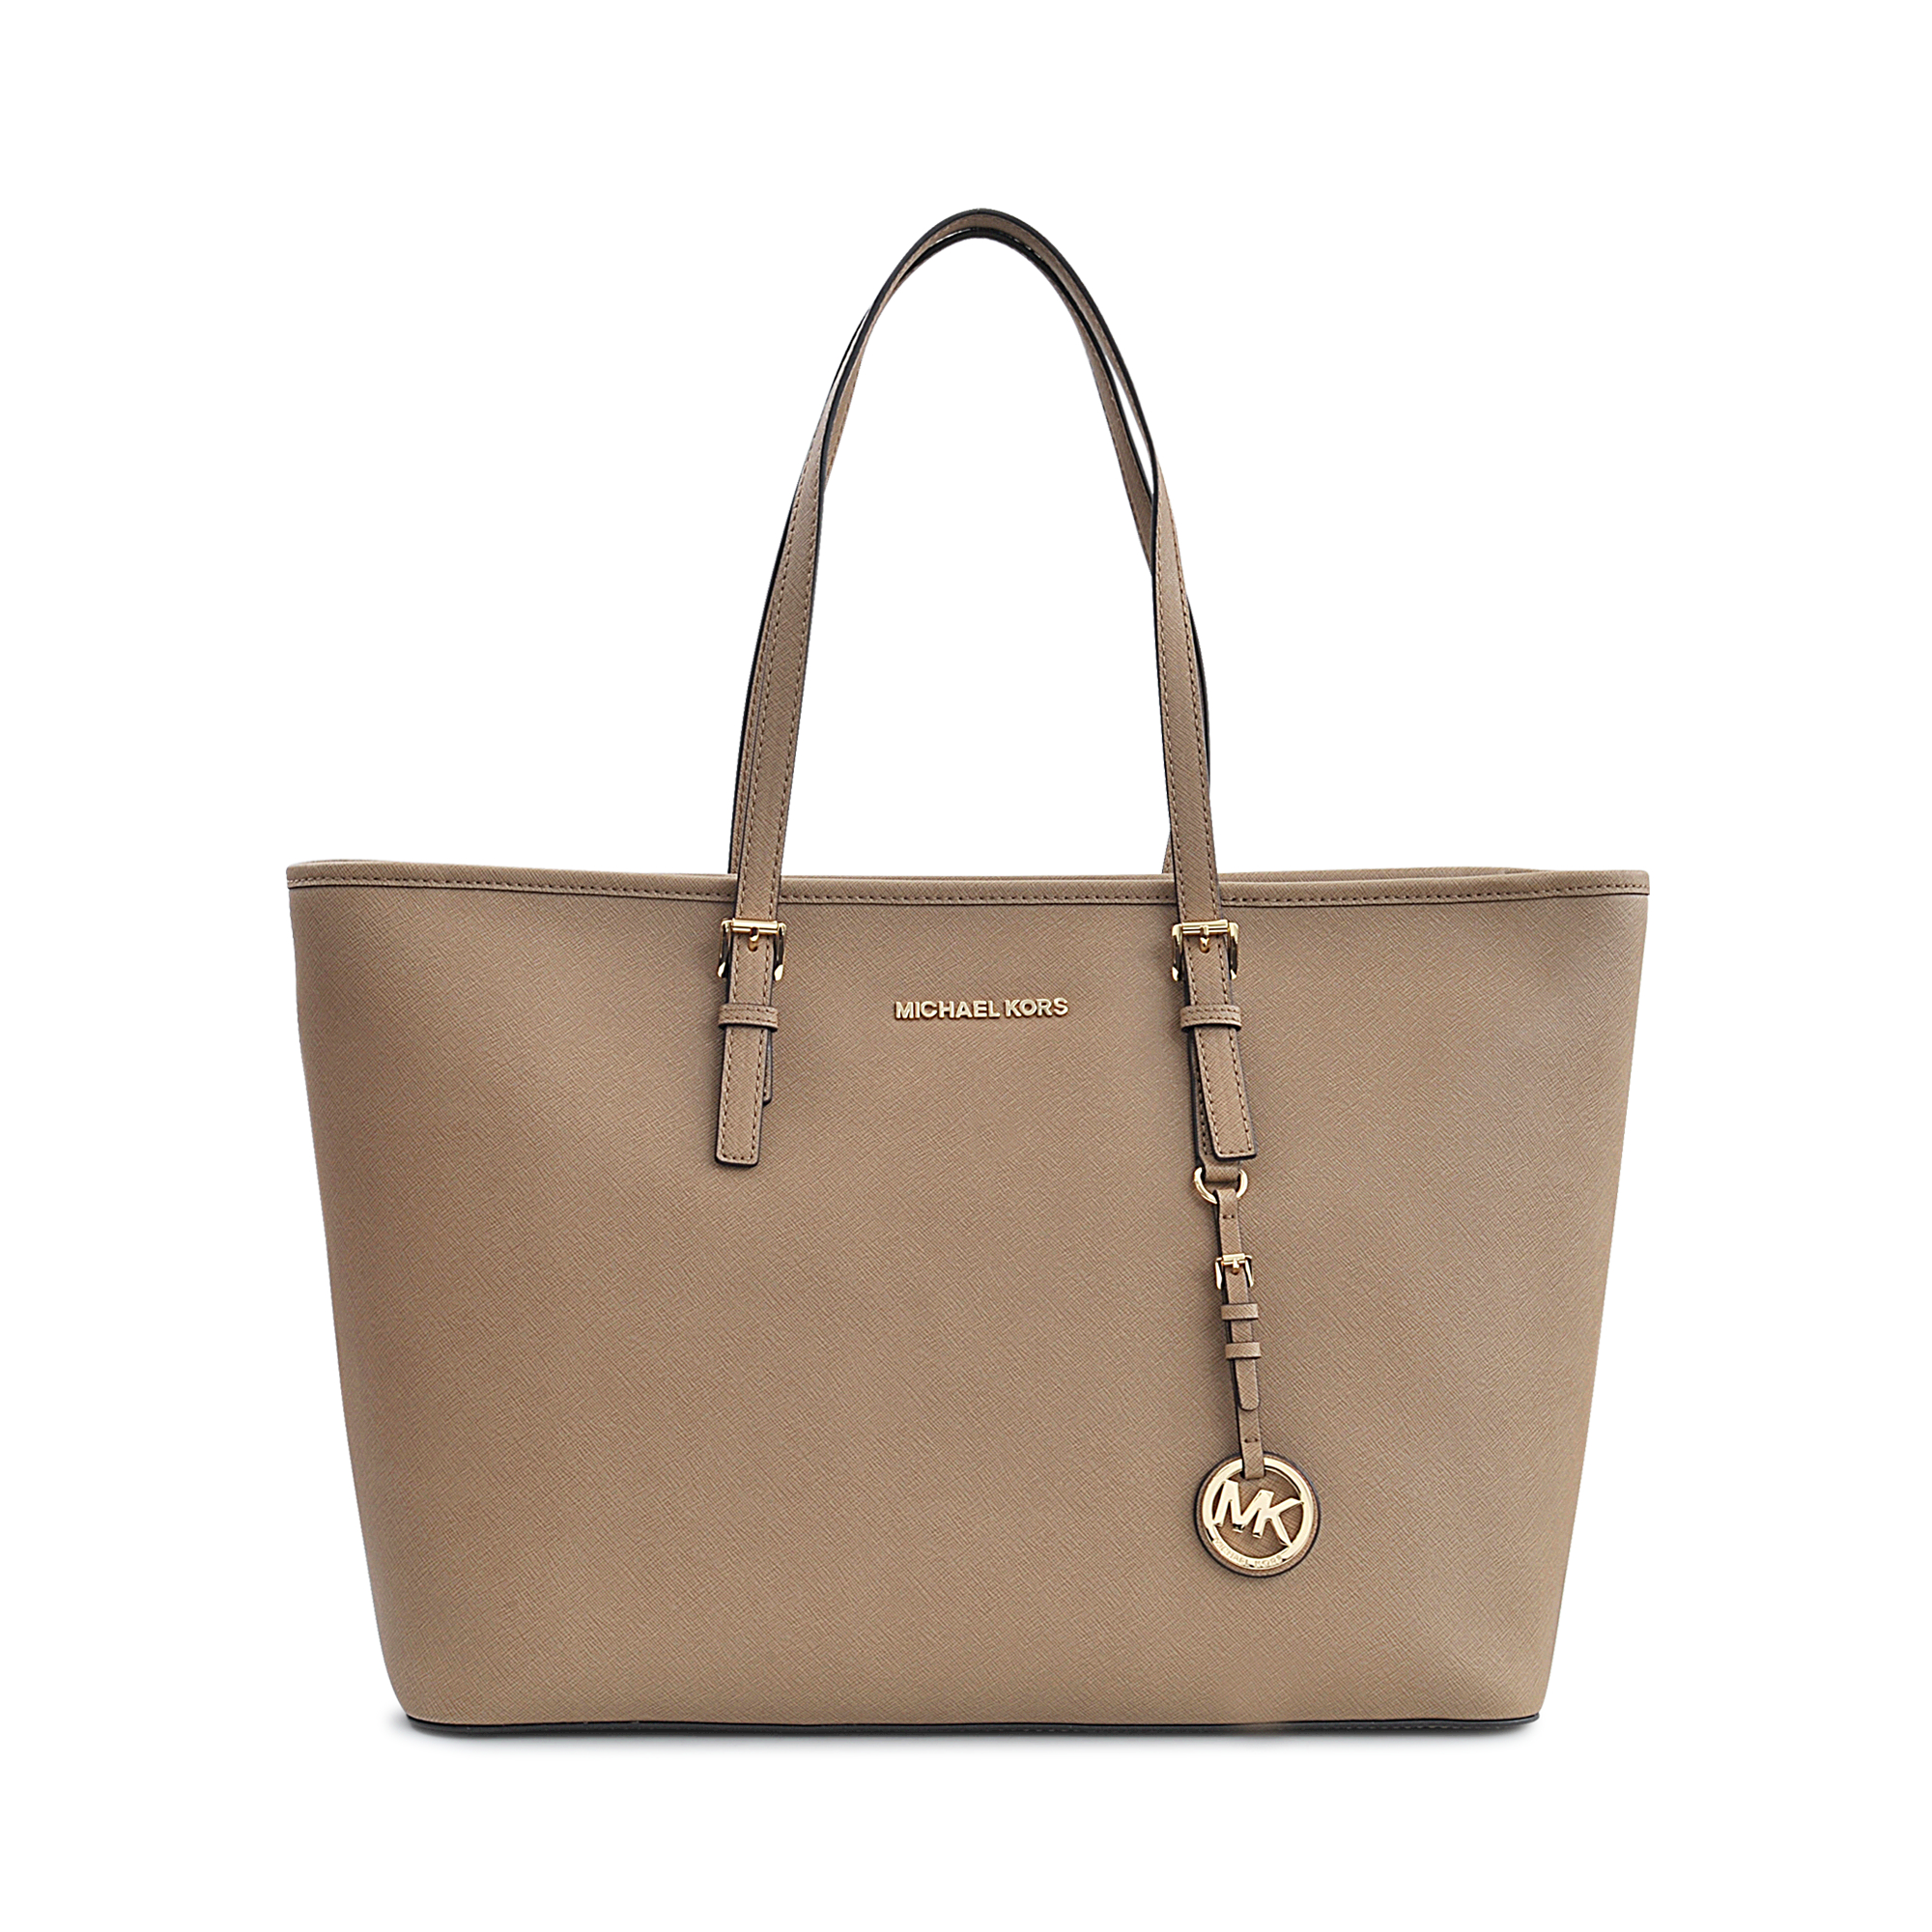 michael kors jet set travel saffiano leather tote in gray lyst. Black Bedroom Furniture Sets. Home Design Ideas